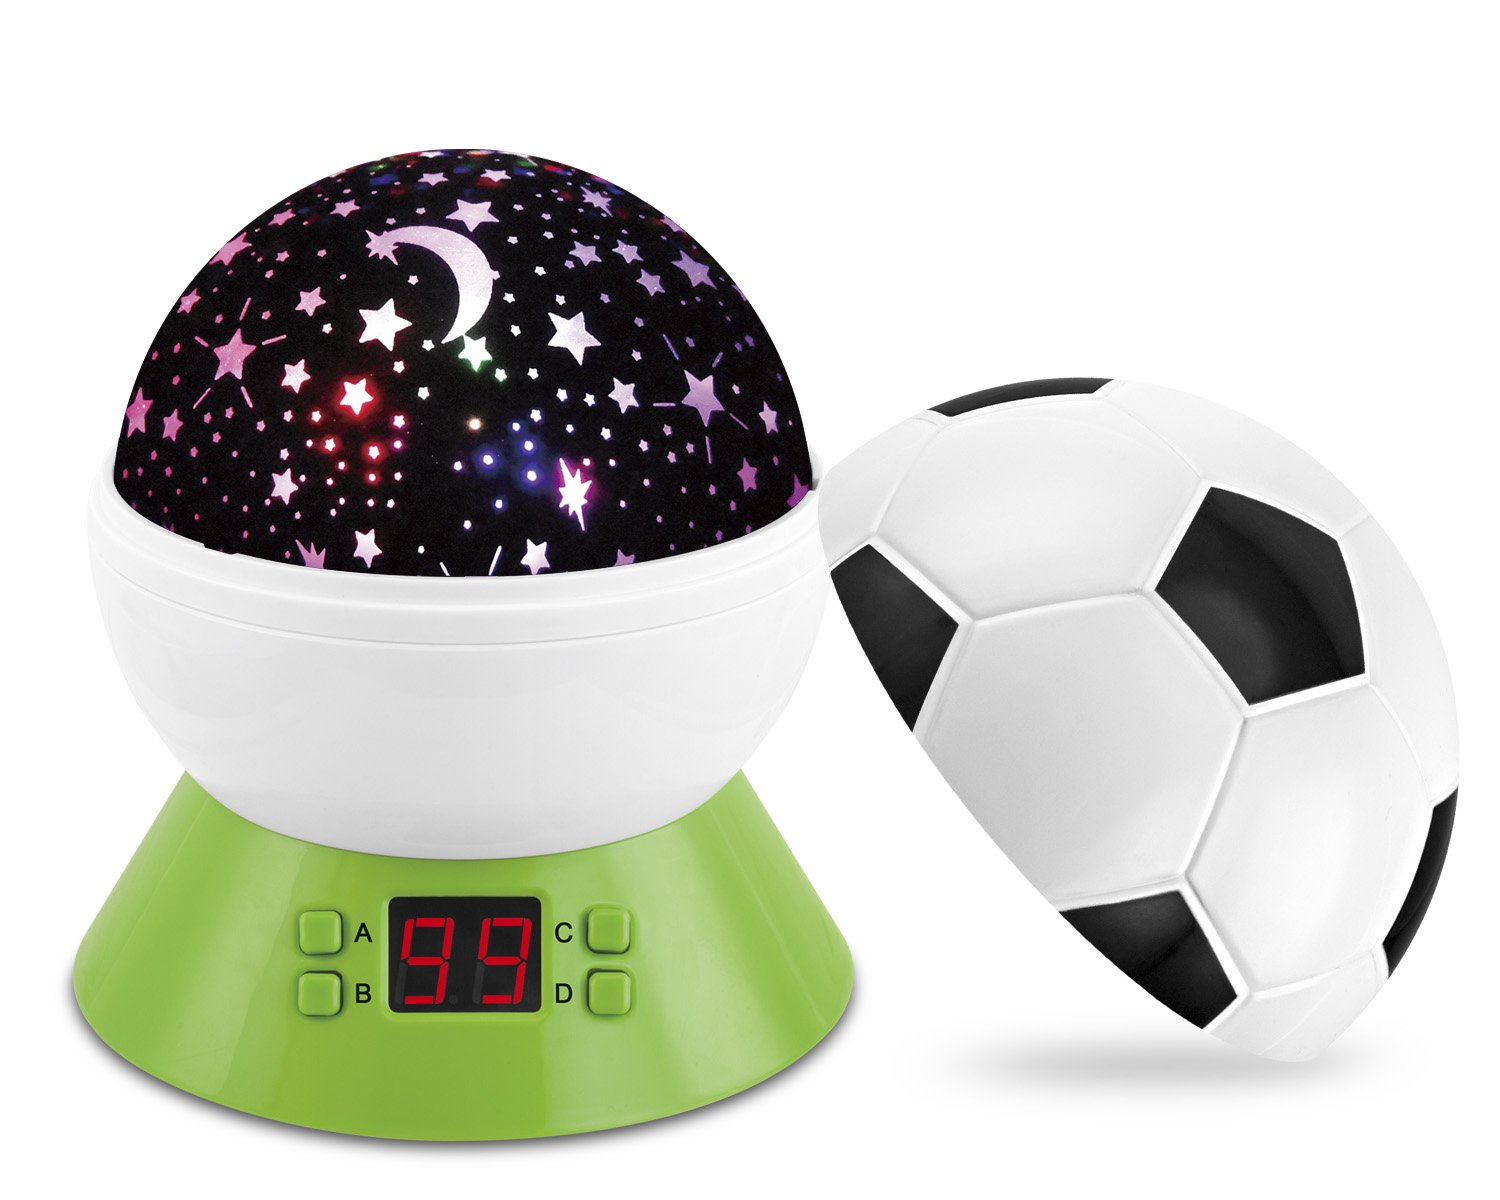 Baby Night Light Star Projector, Soccer Night Light with Timer Auto Shut-off Lamp, Colorful Star Rotating Light Projector Sleep Soothers, Perfect Birthday Gift for Kids